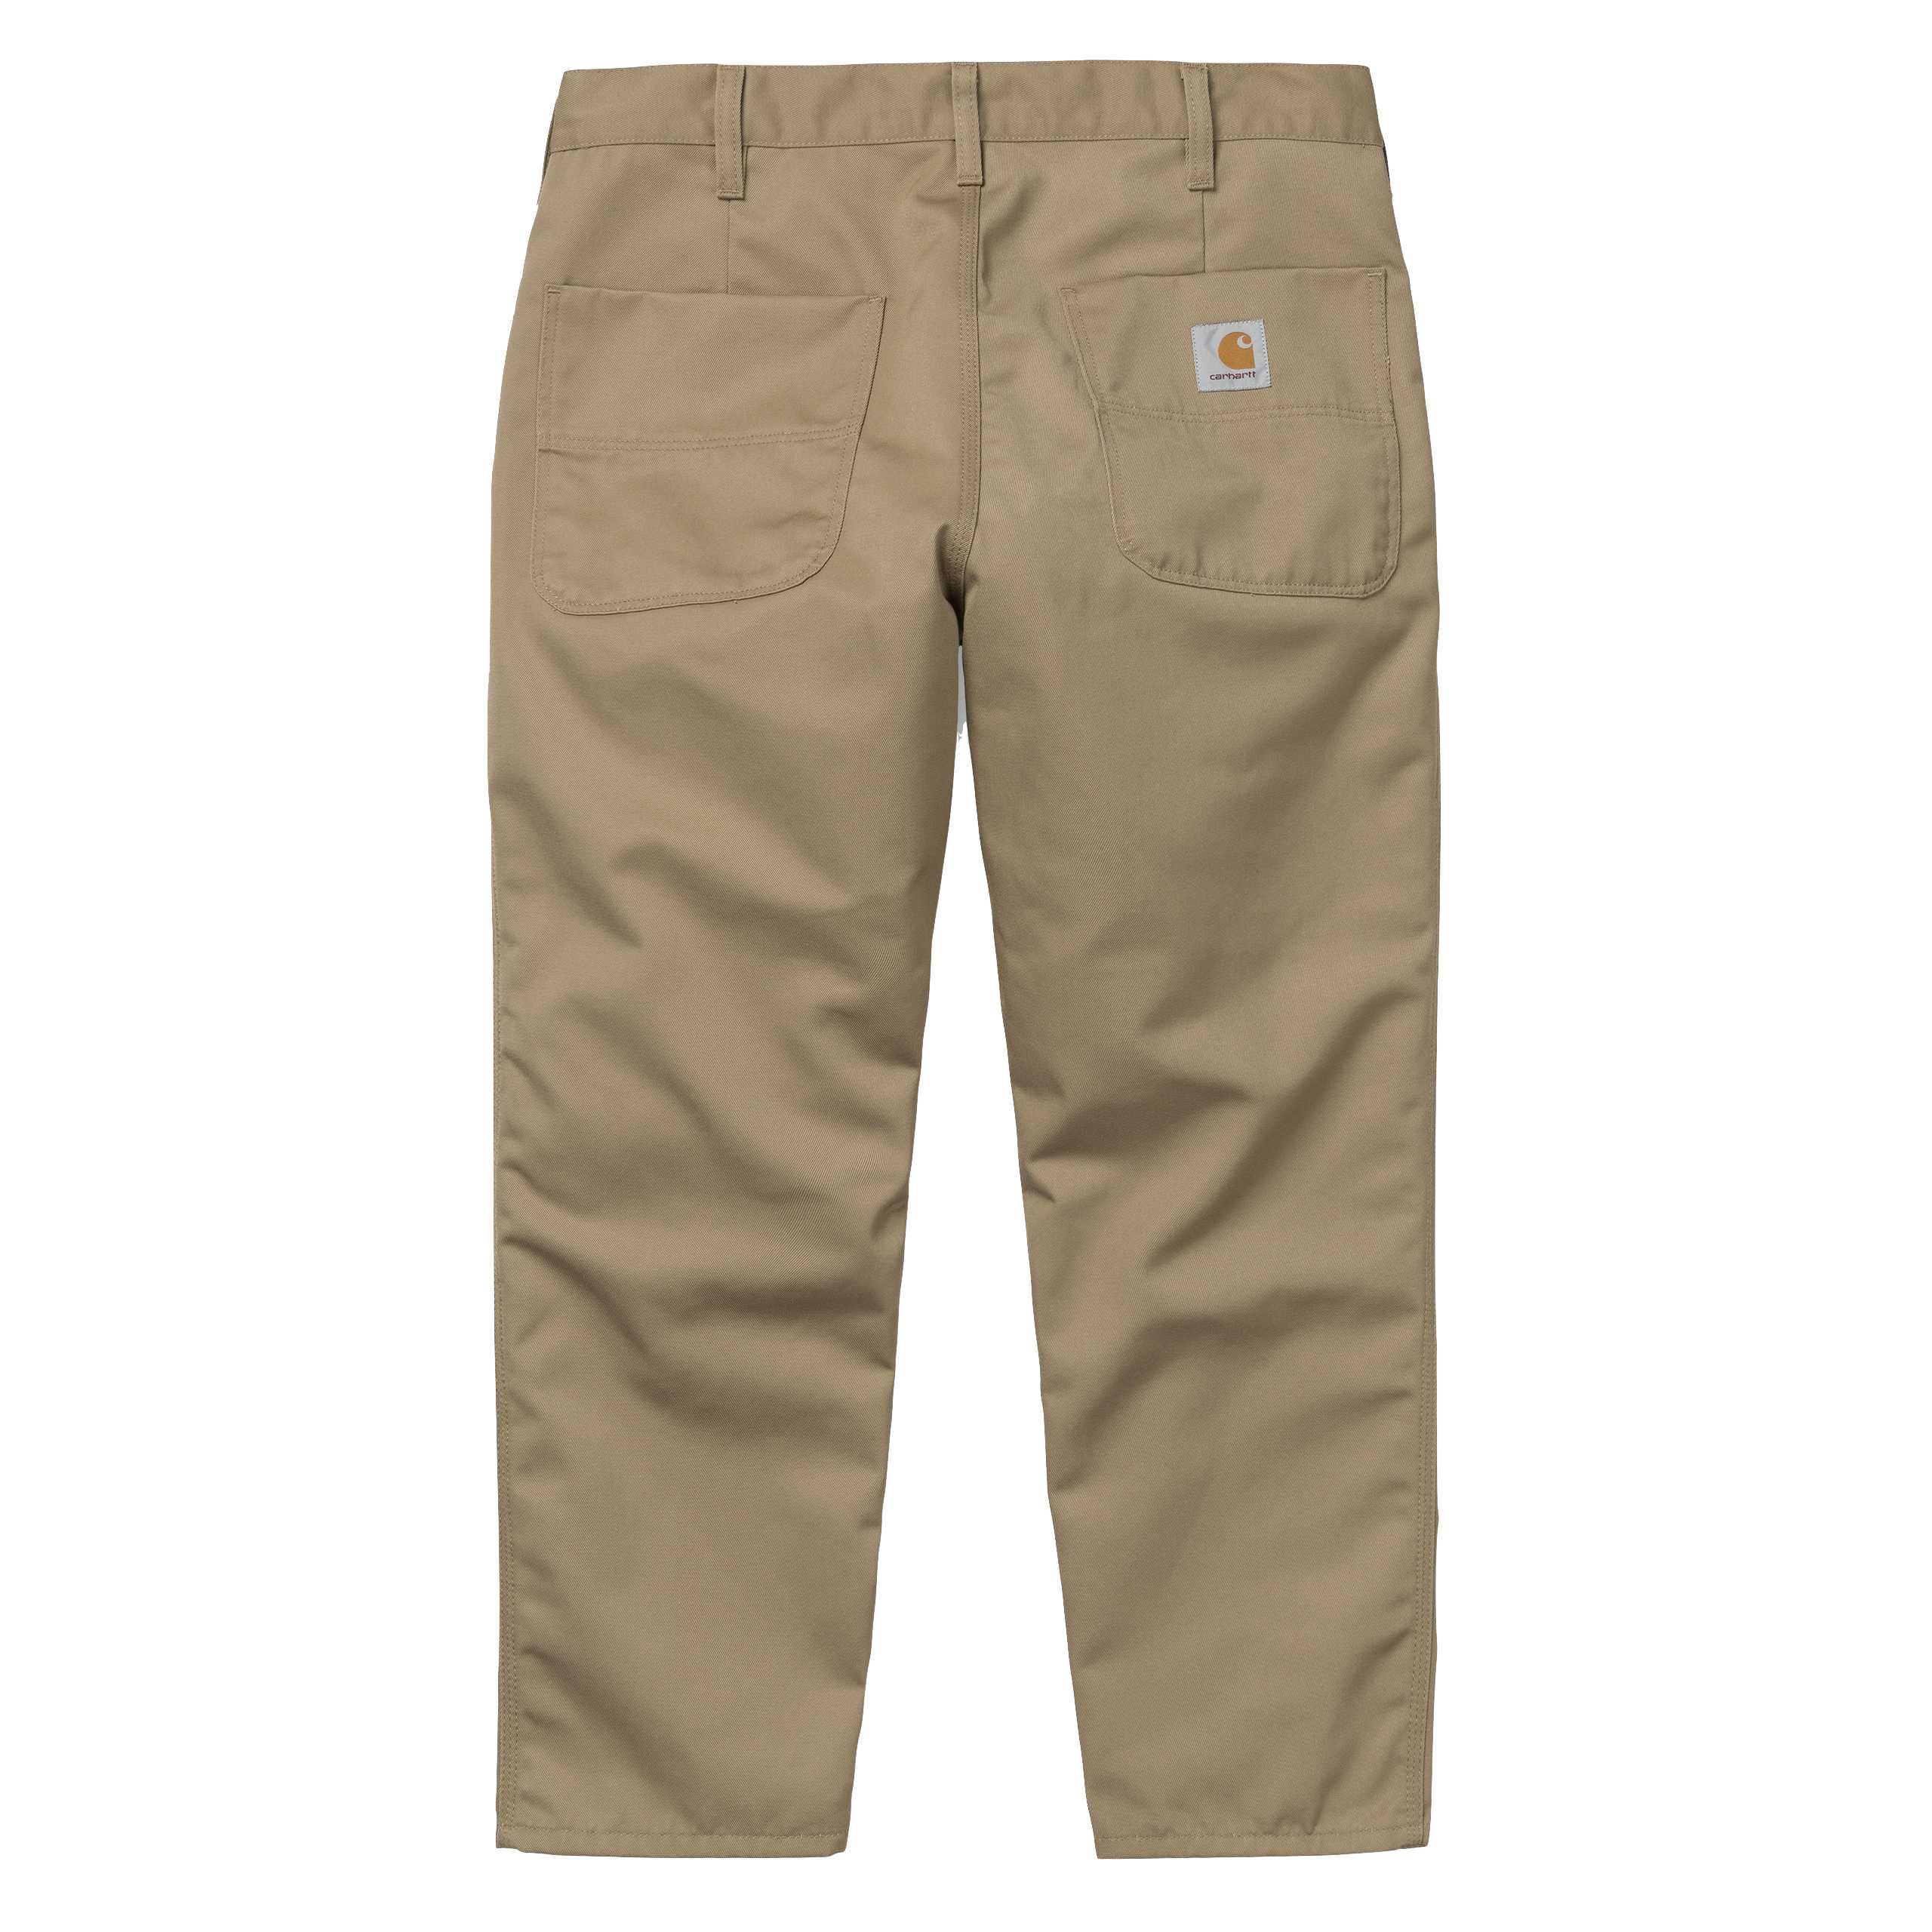 carhartt-wip-abbott-pant-65-35-%-polyester-cotton-leather-rinsed-no-length-back-homme